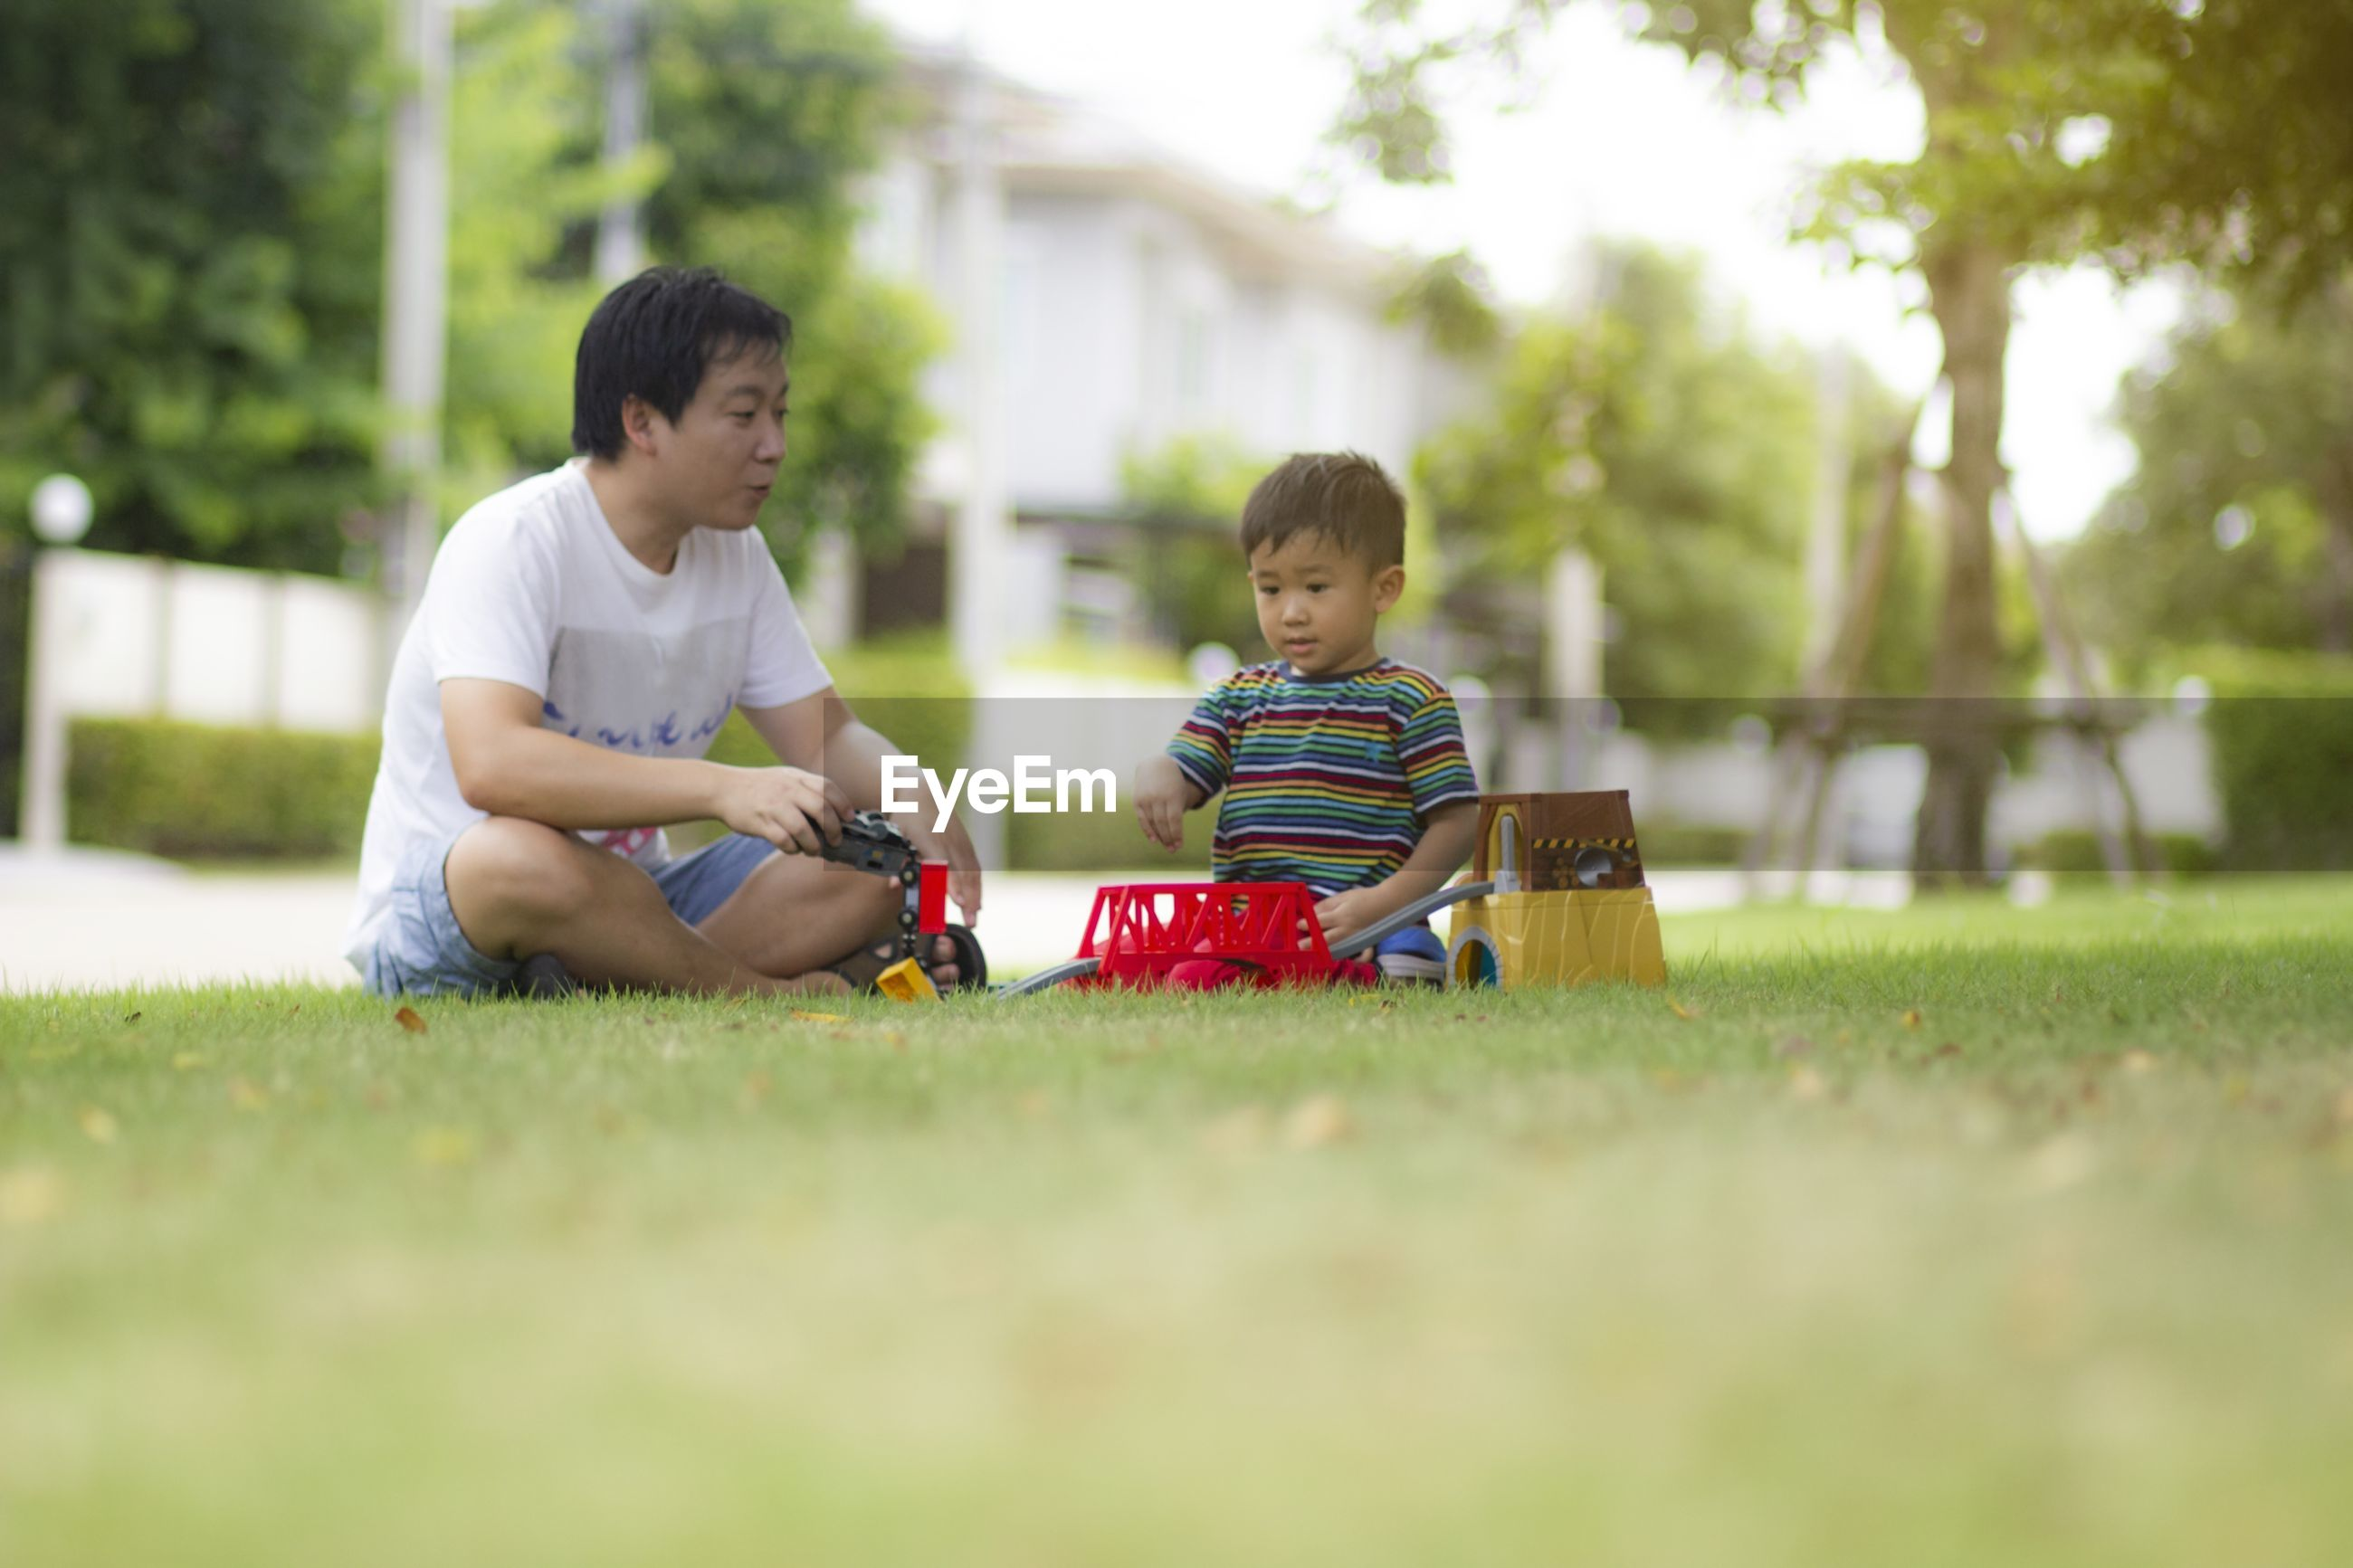 Father and son playing on grass in park